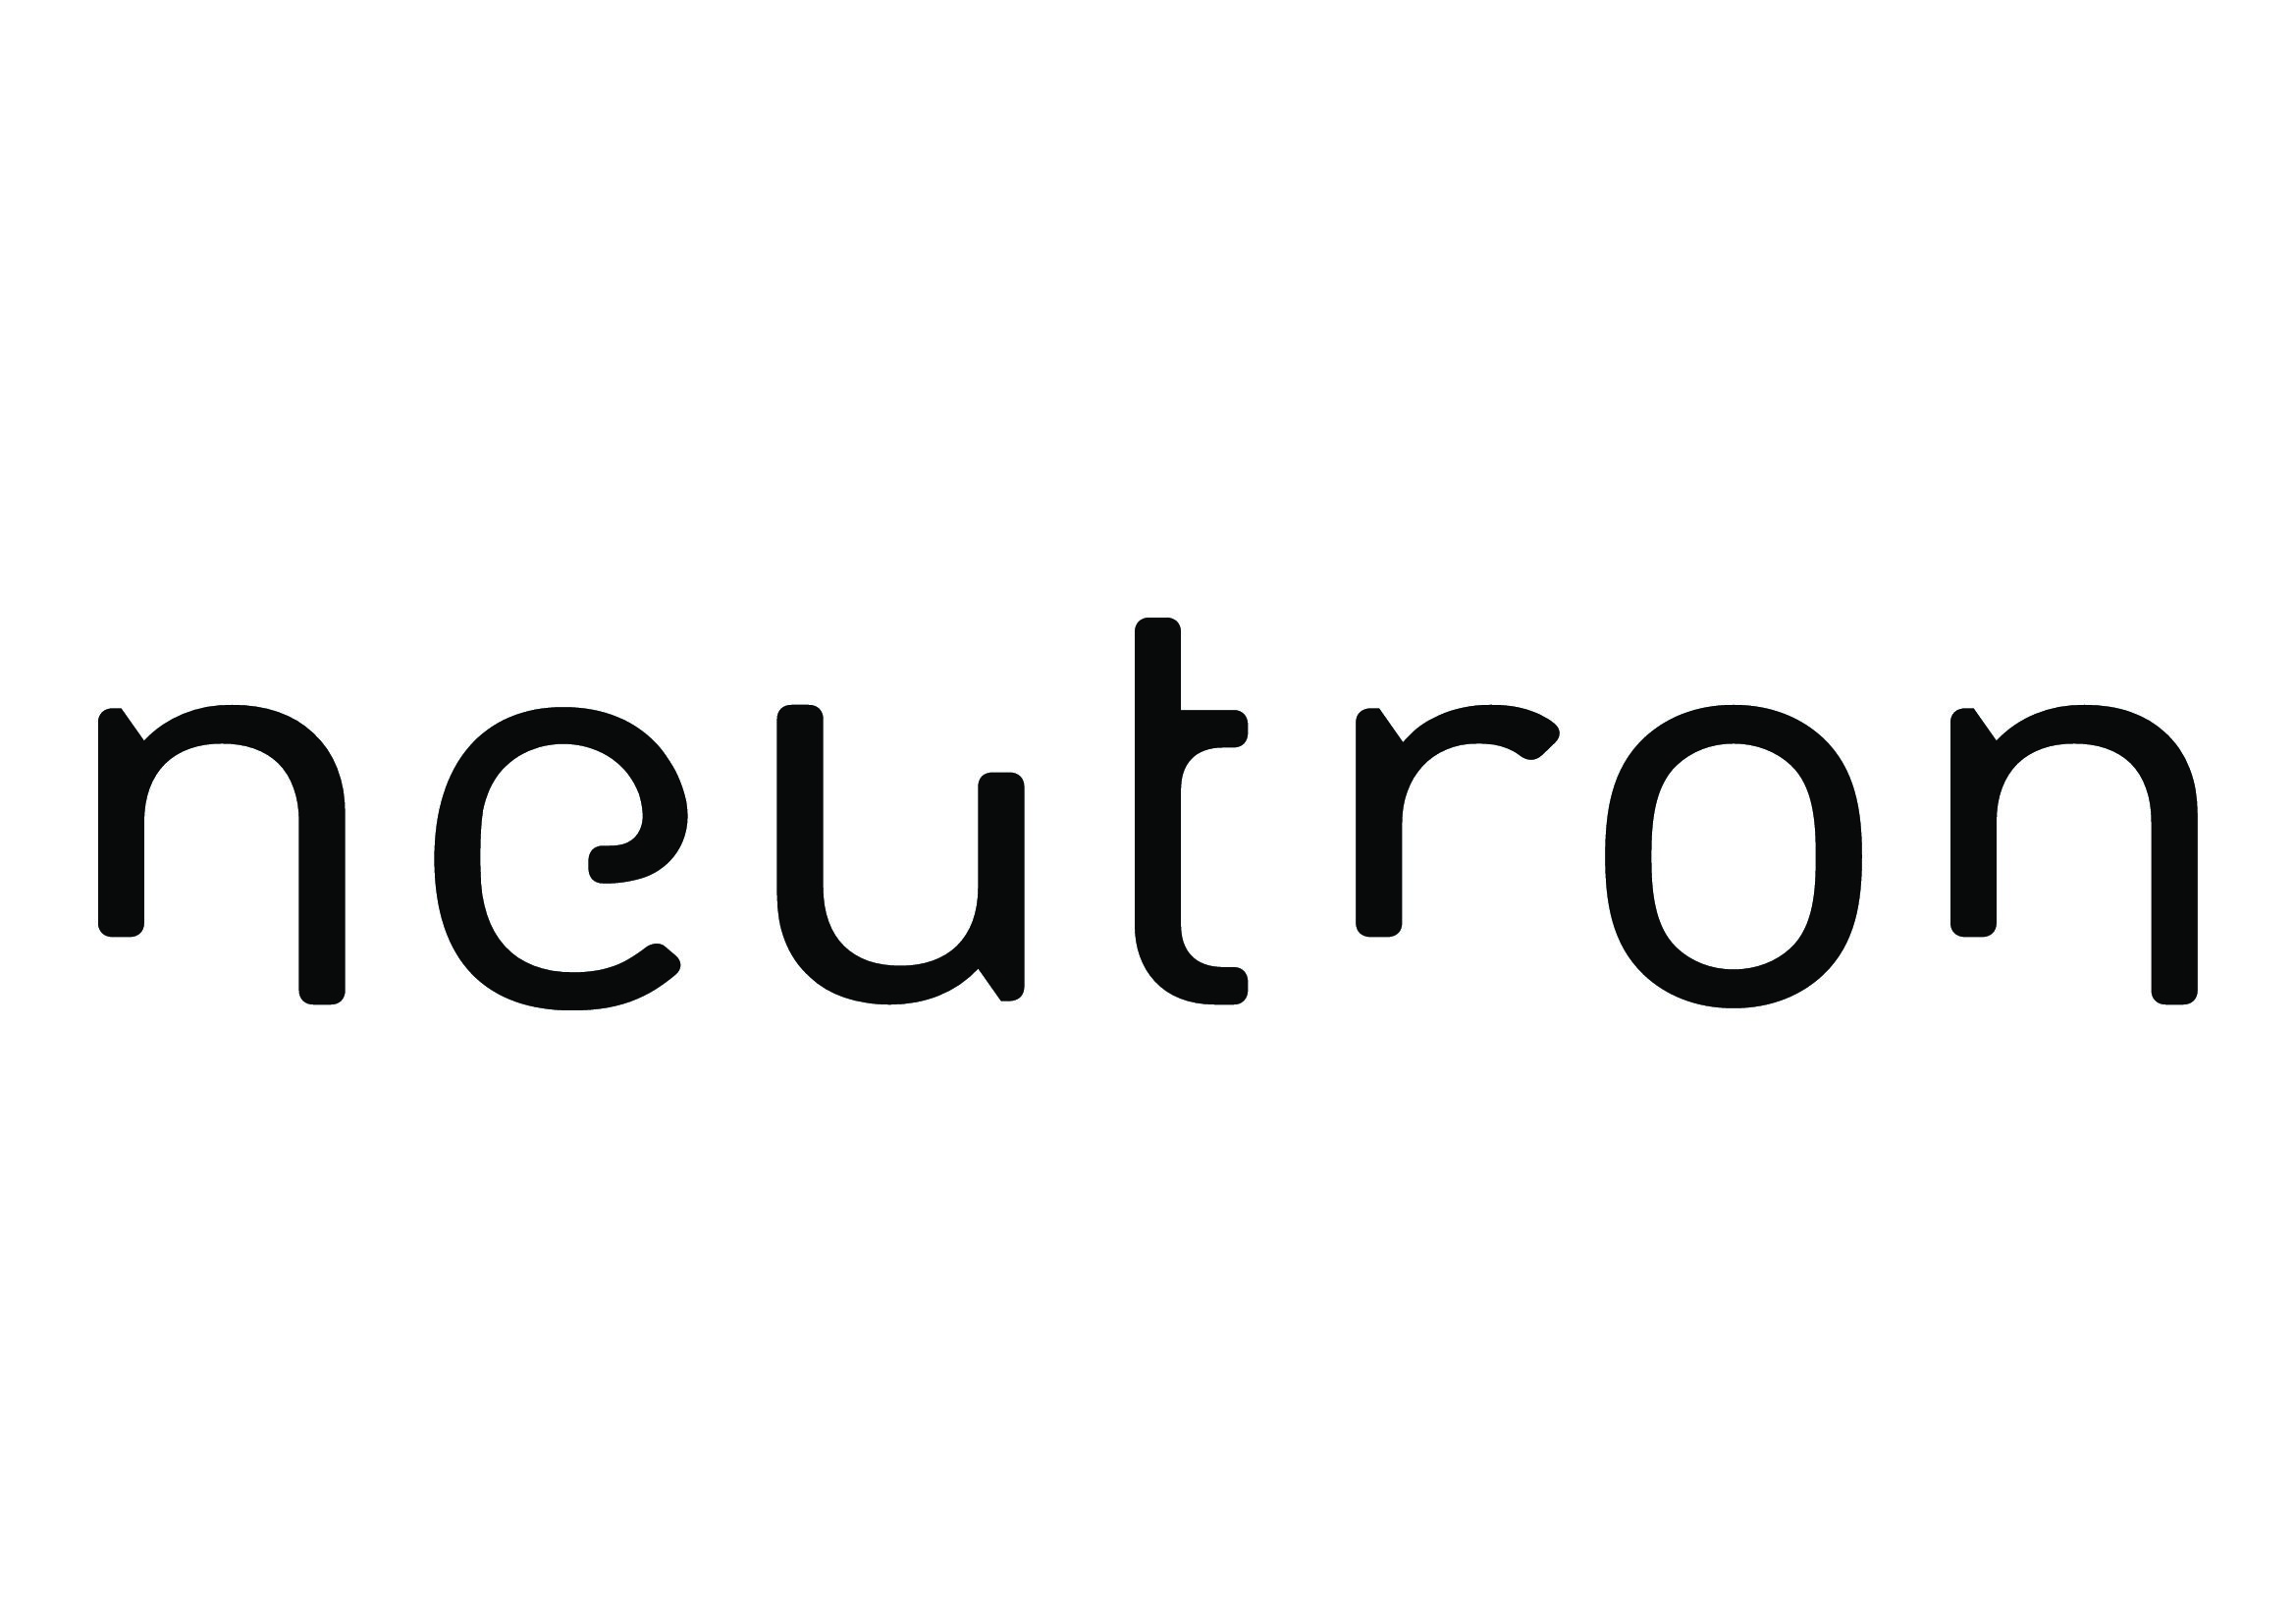 neutron_logo